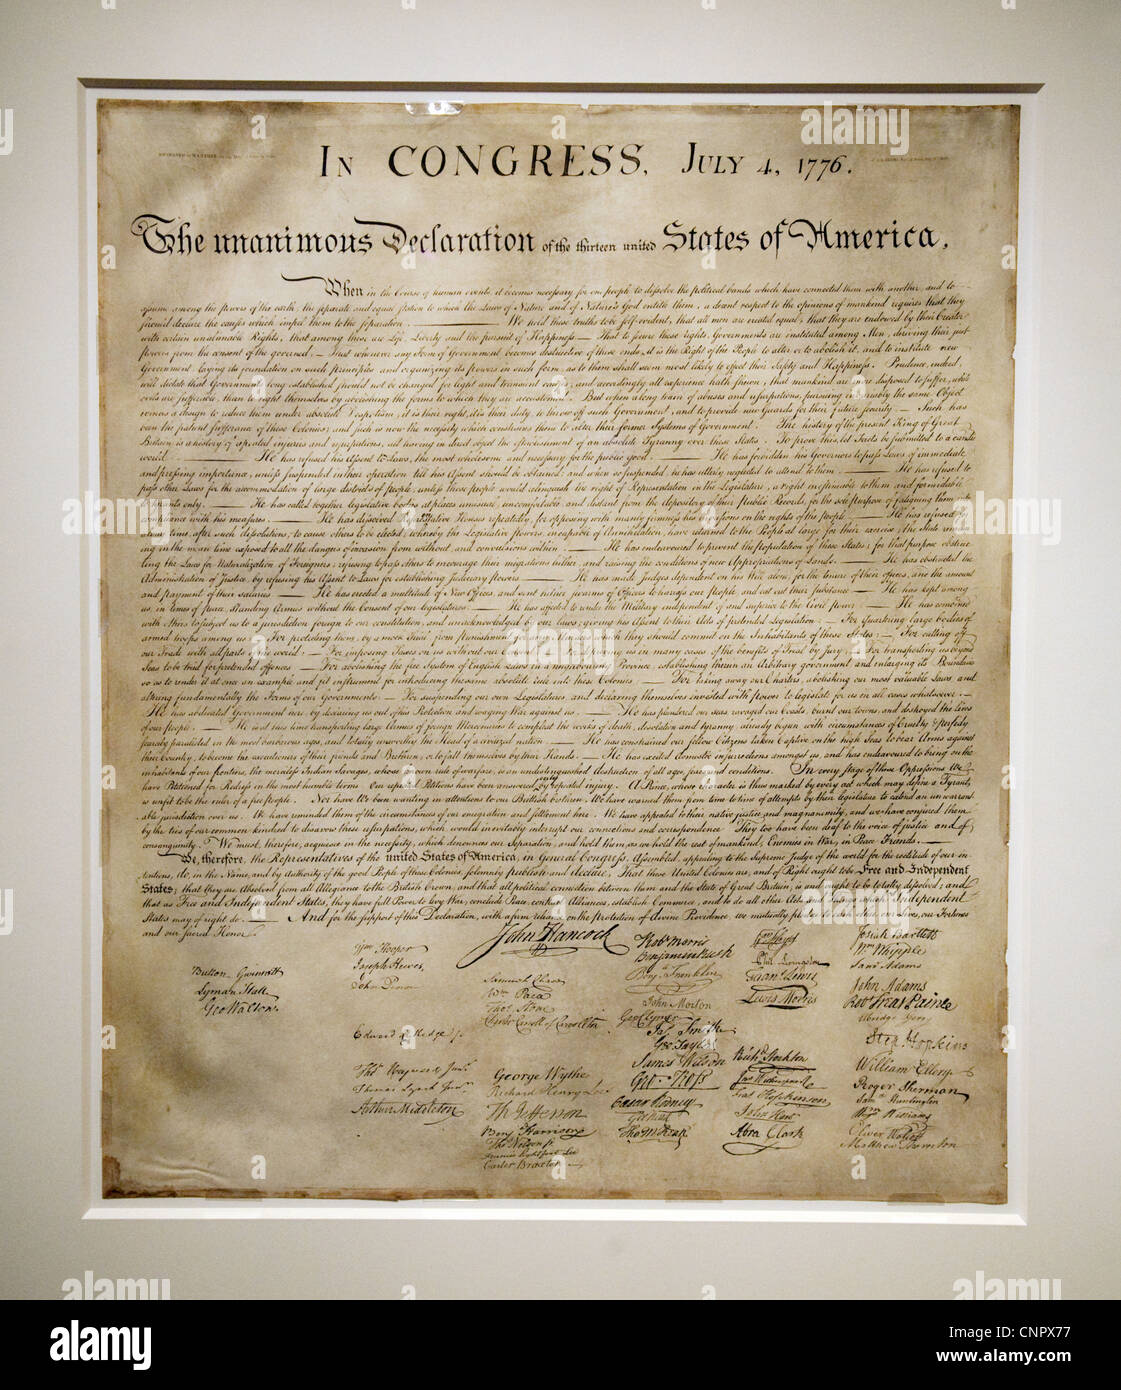 The original Declaration of Independence document, the National Archives, Washington DC USA - Stock Image